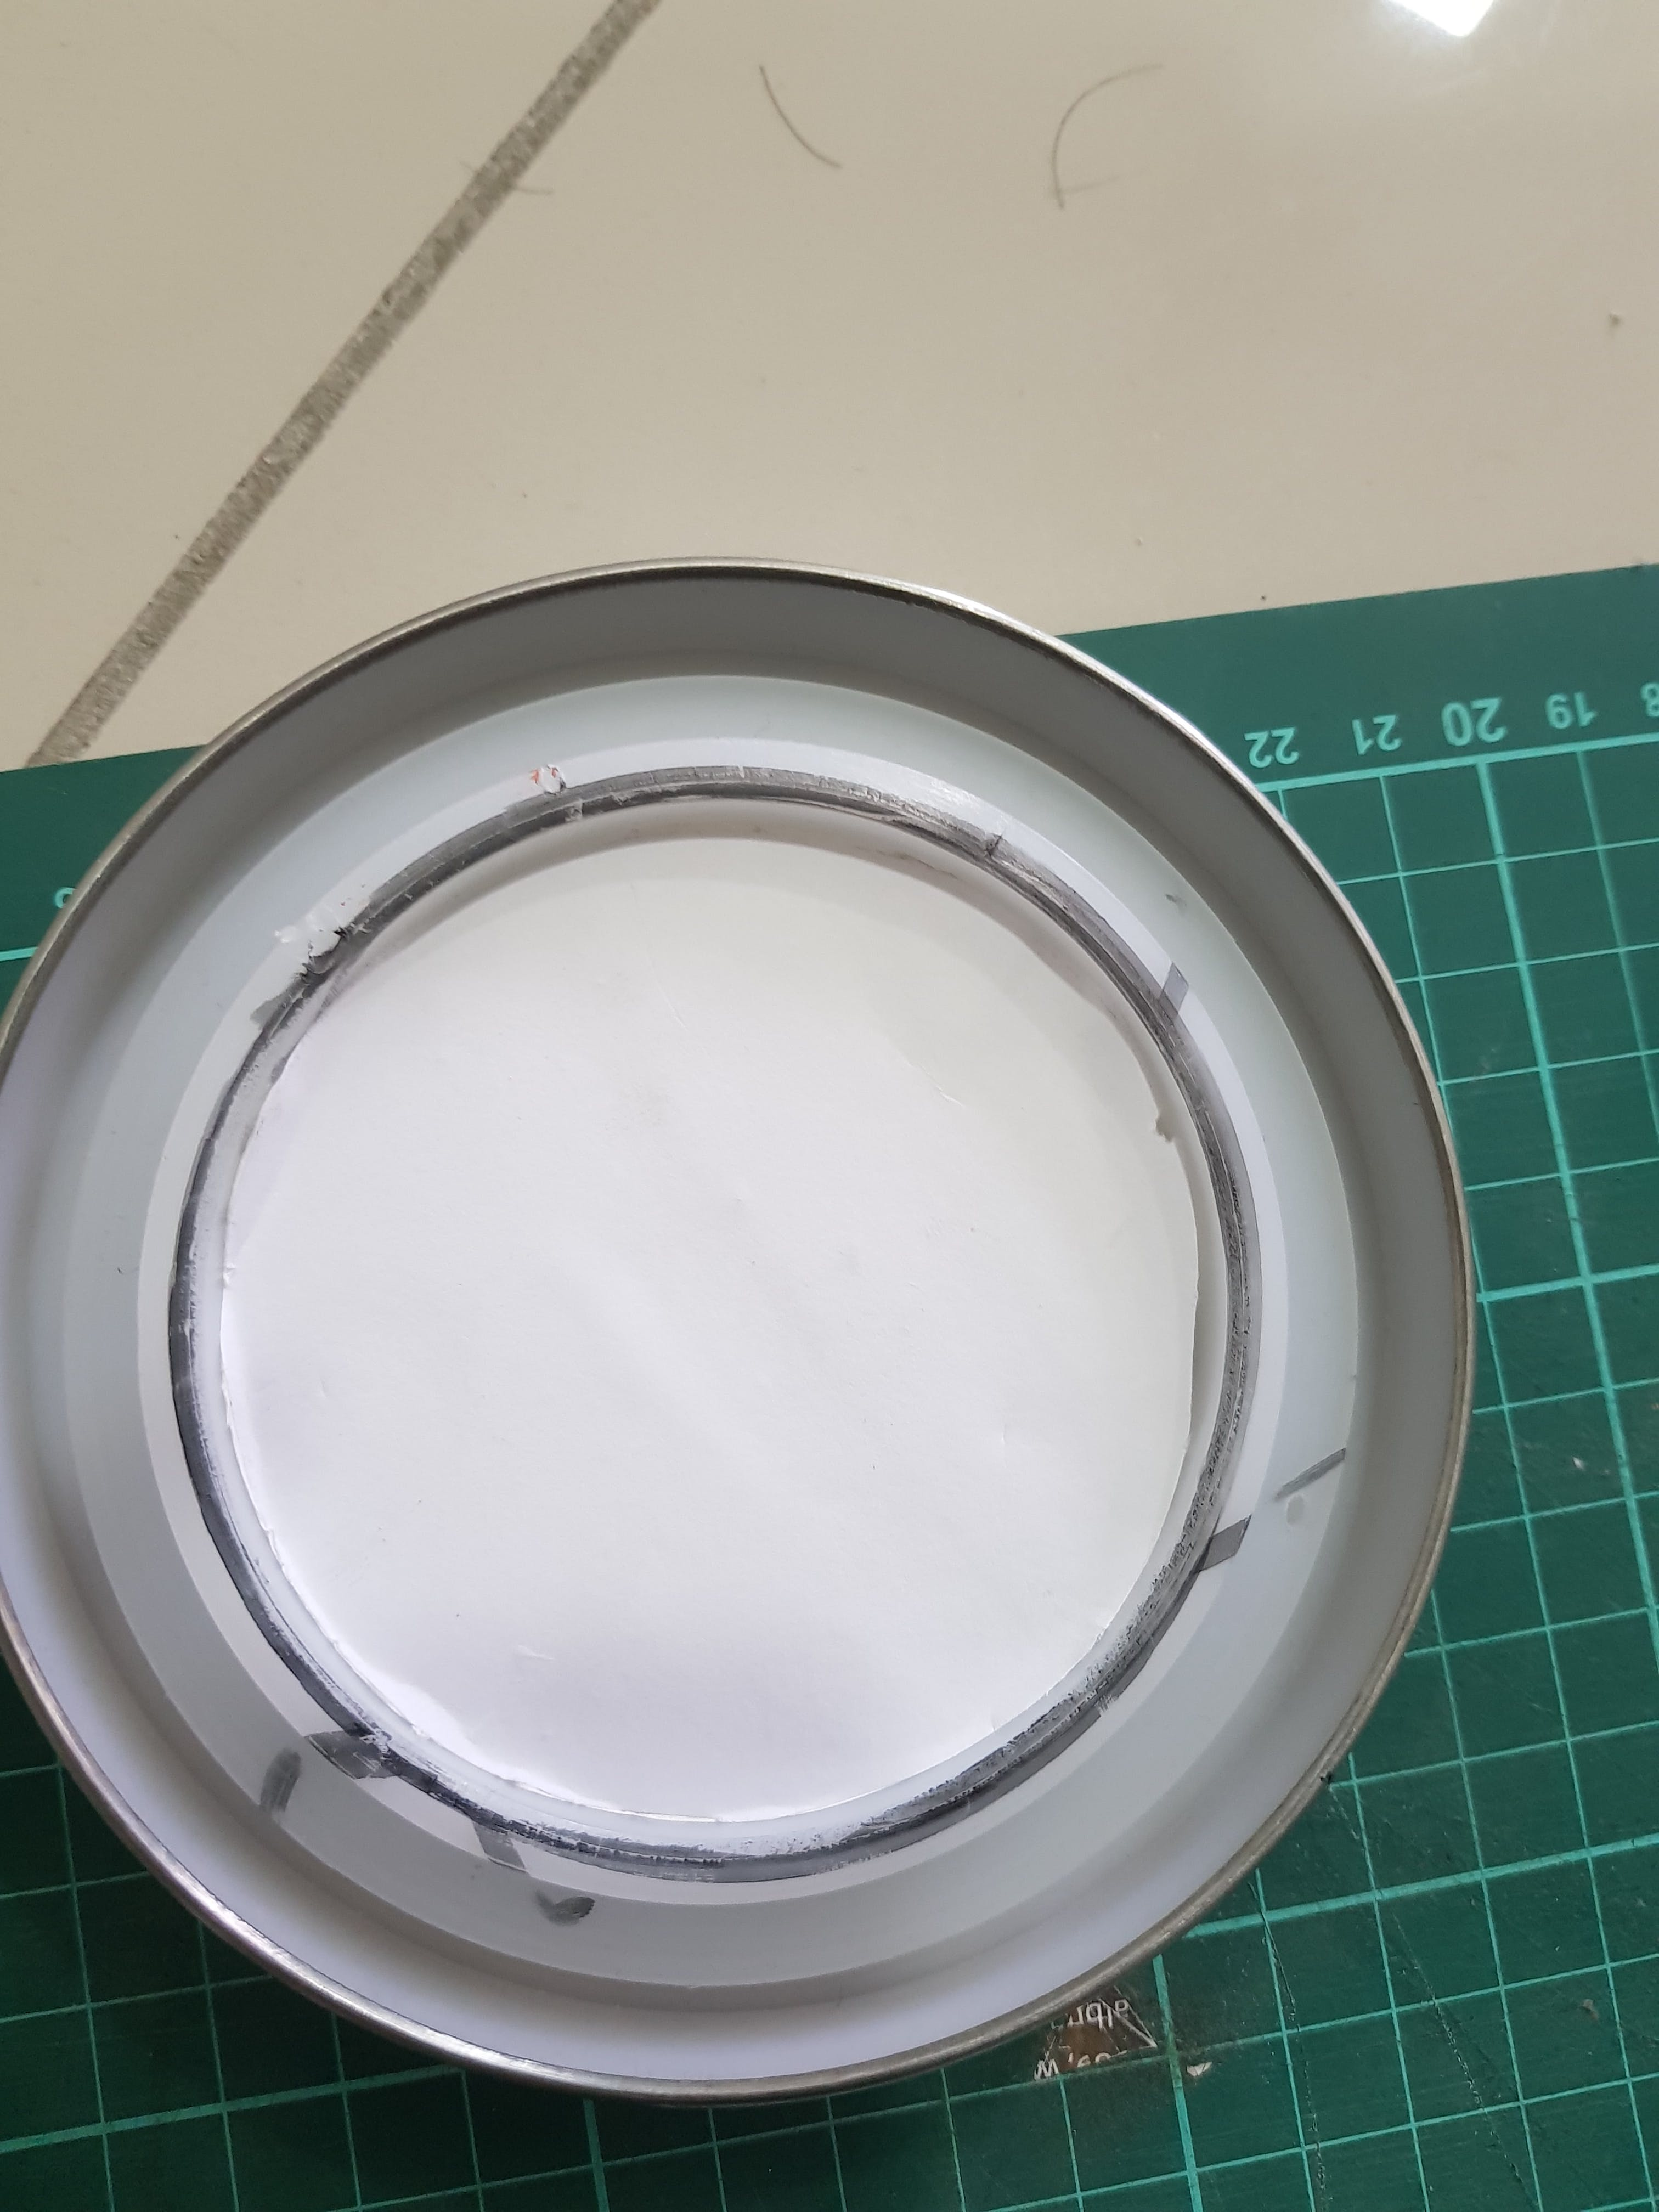 The foam is perfectly fit with the jar hole